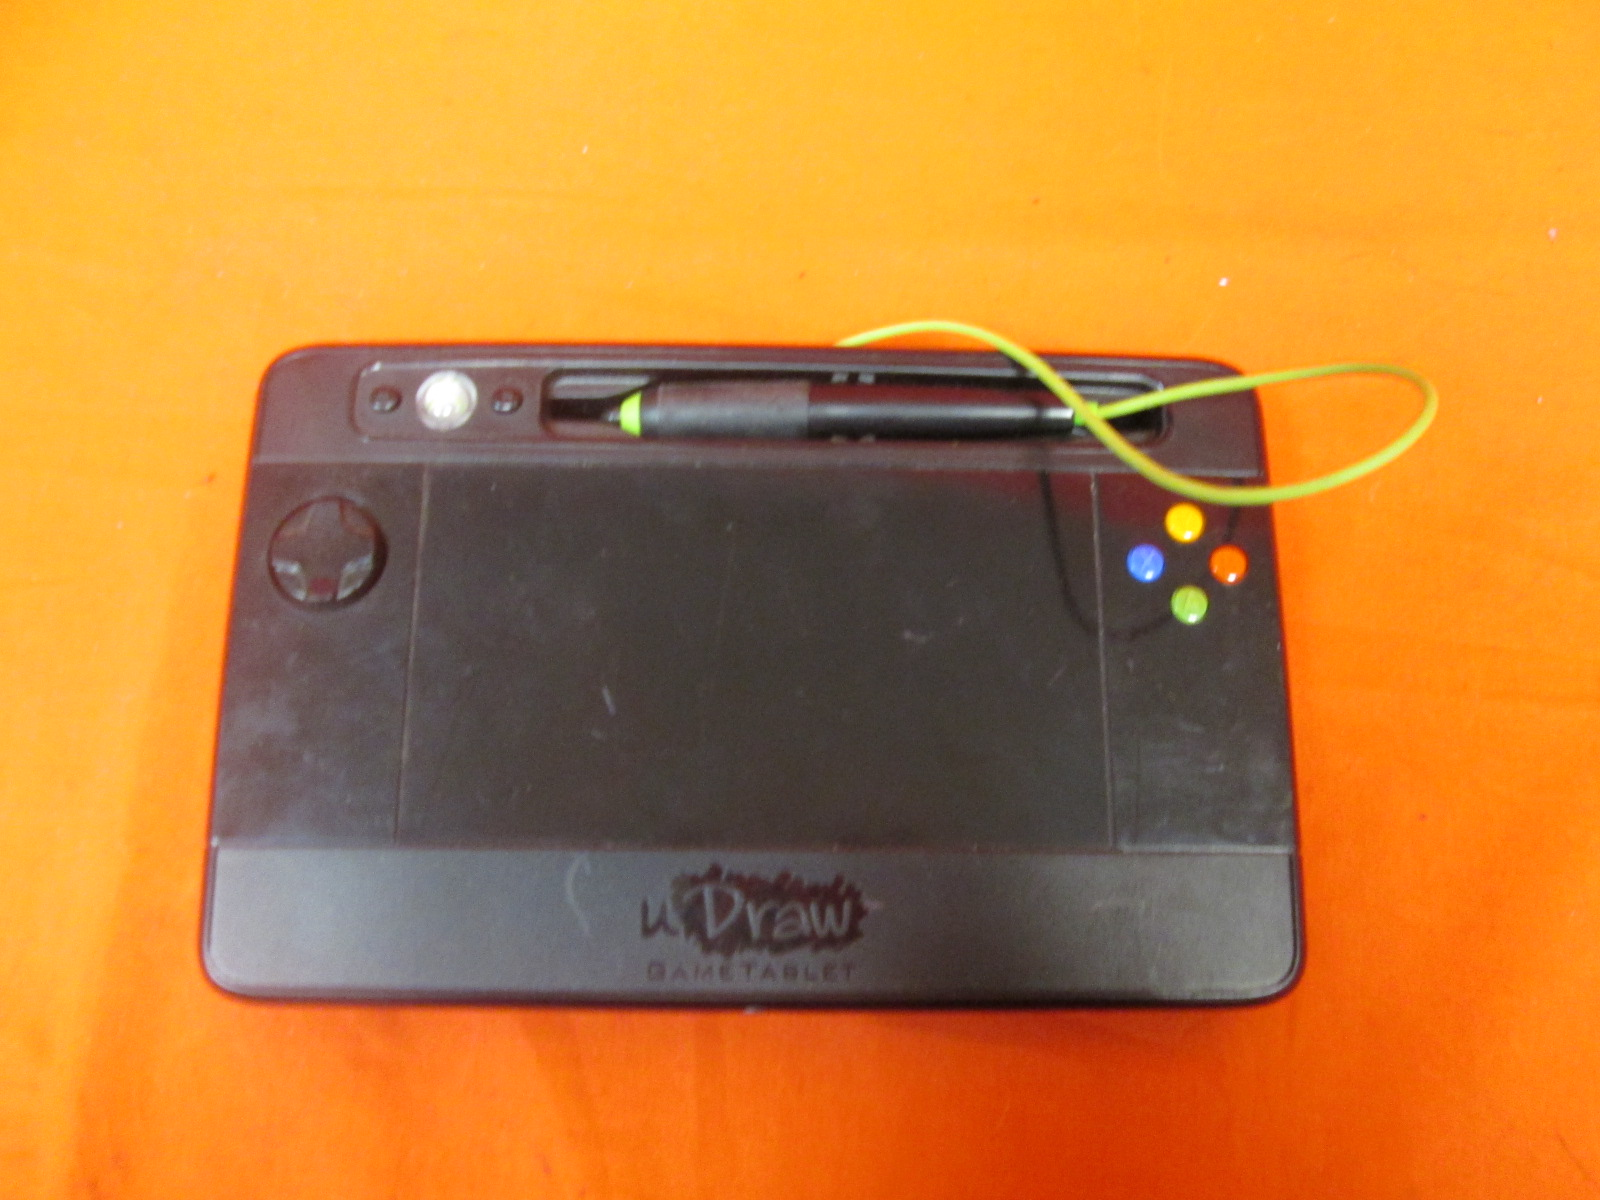 uDraw Game Tablet Only